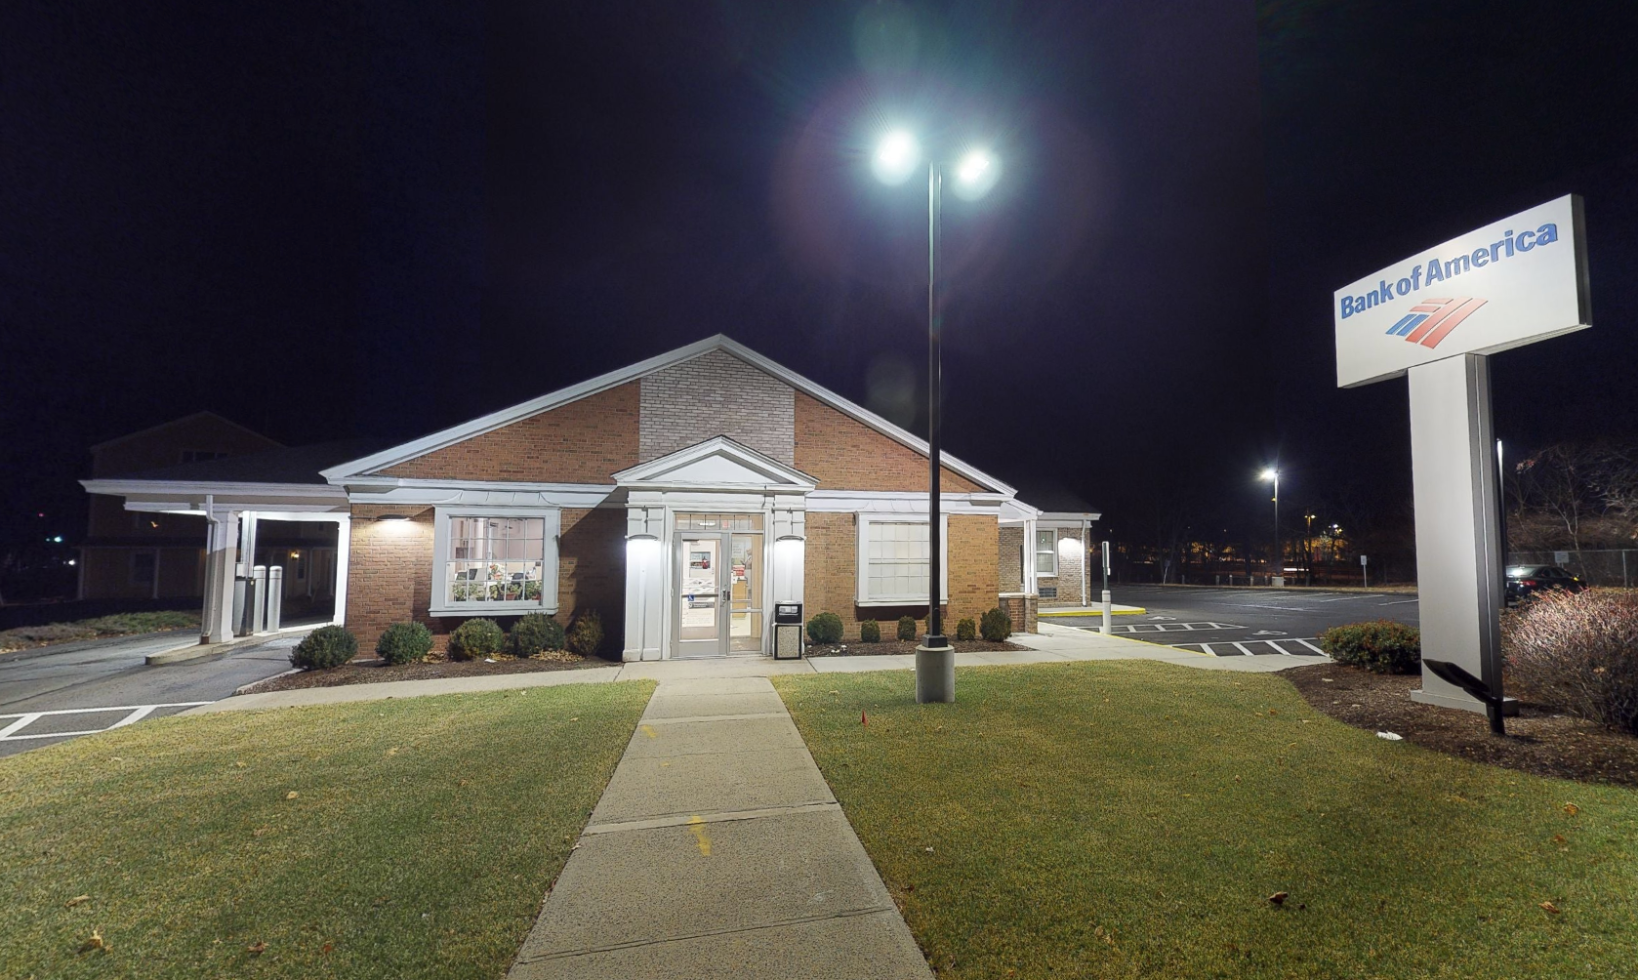 Bank of America financial center with walk-up ATM | 35 Washington Ave, North Haven, CT 06473